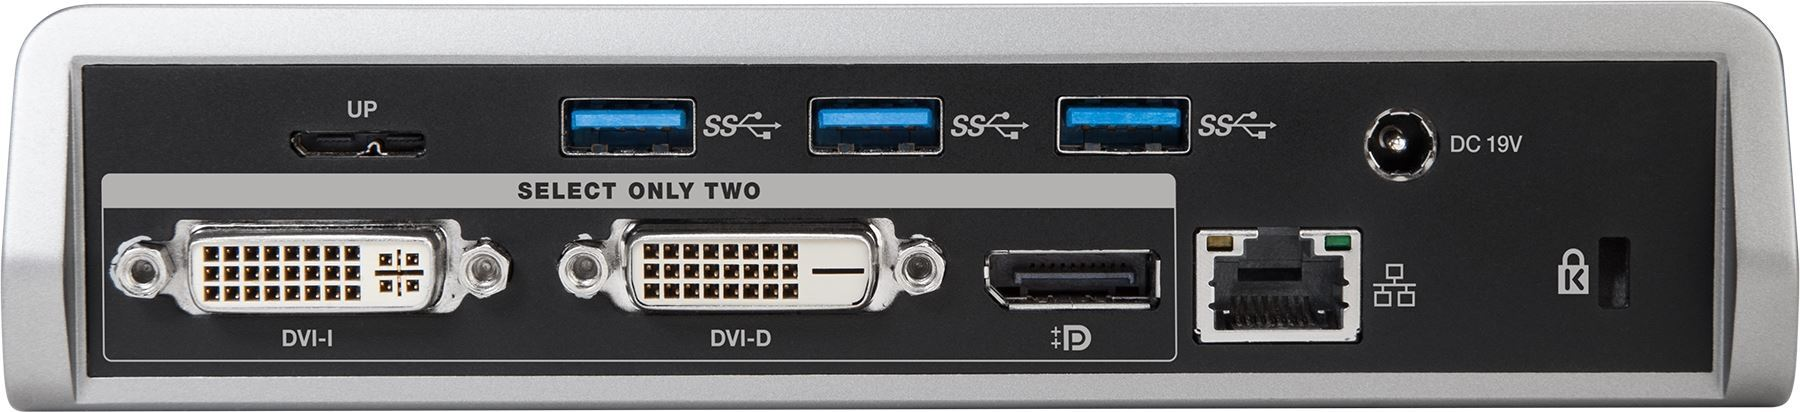 Picture of USB 3.0 1K-4K Dual Video Docking Station